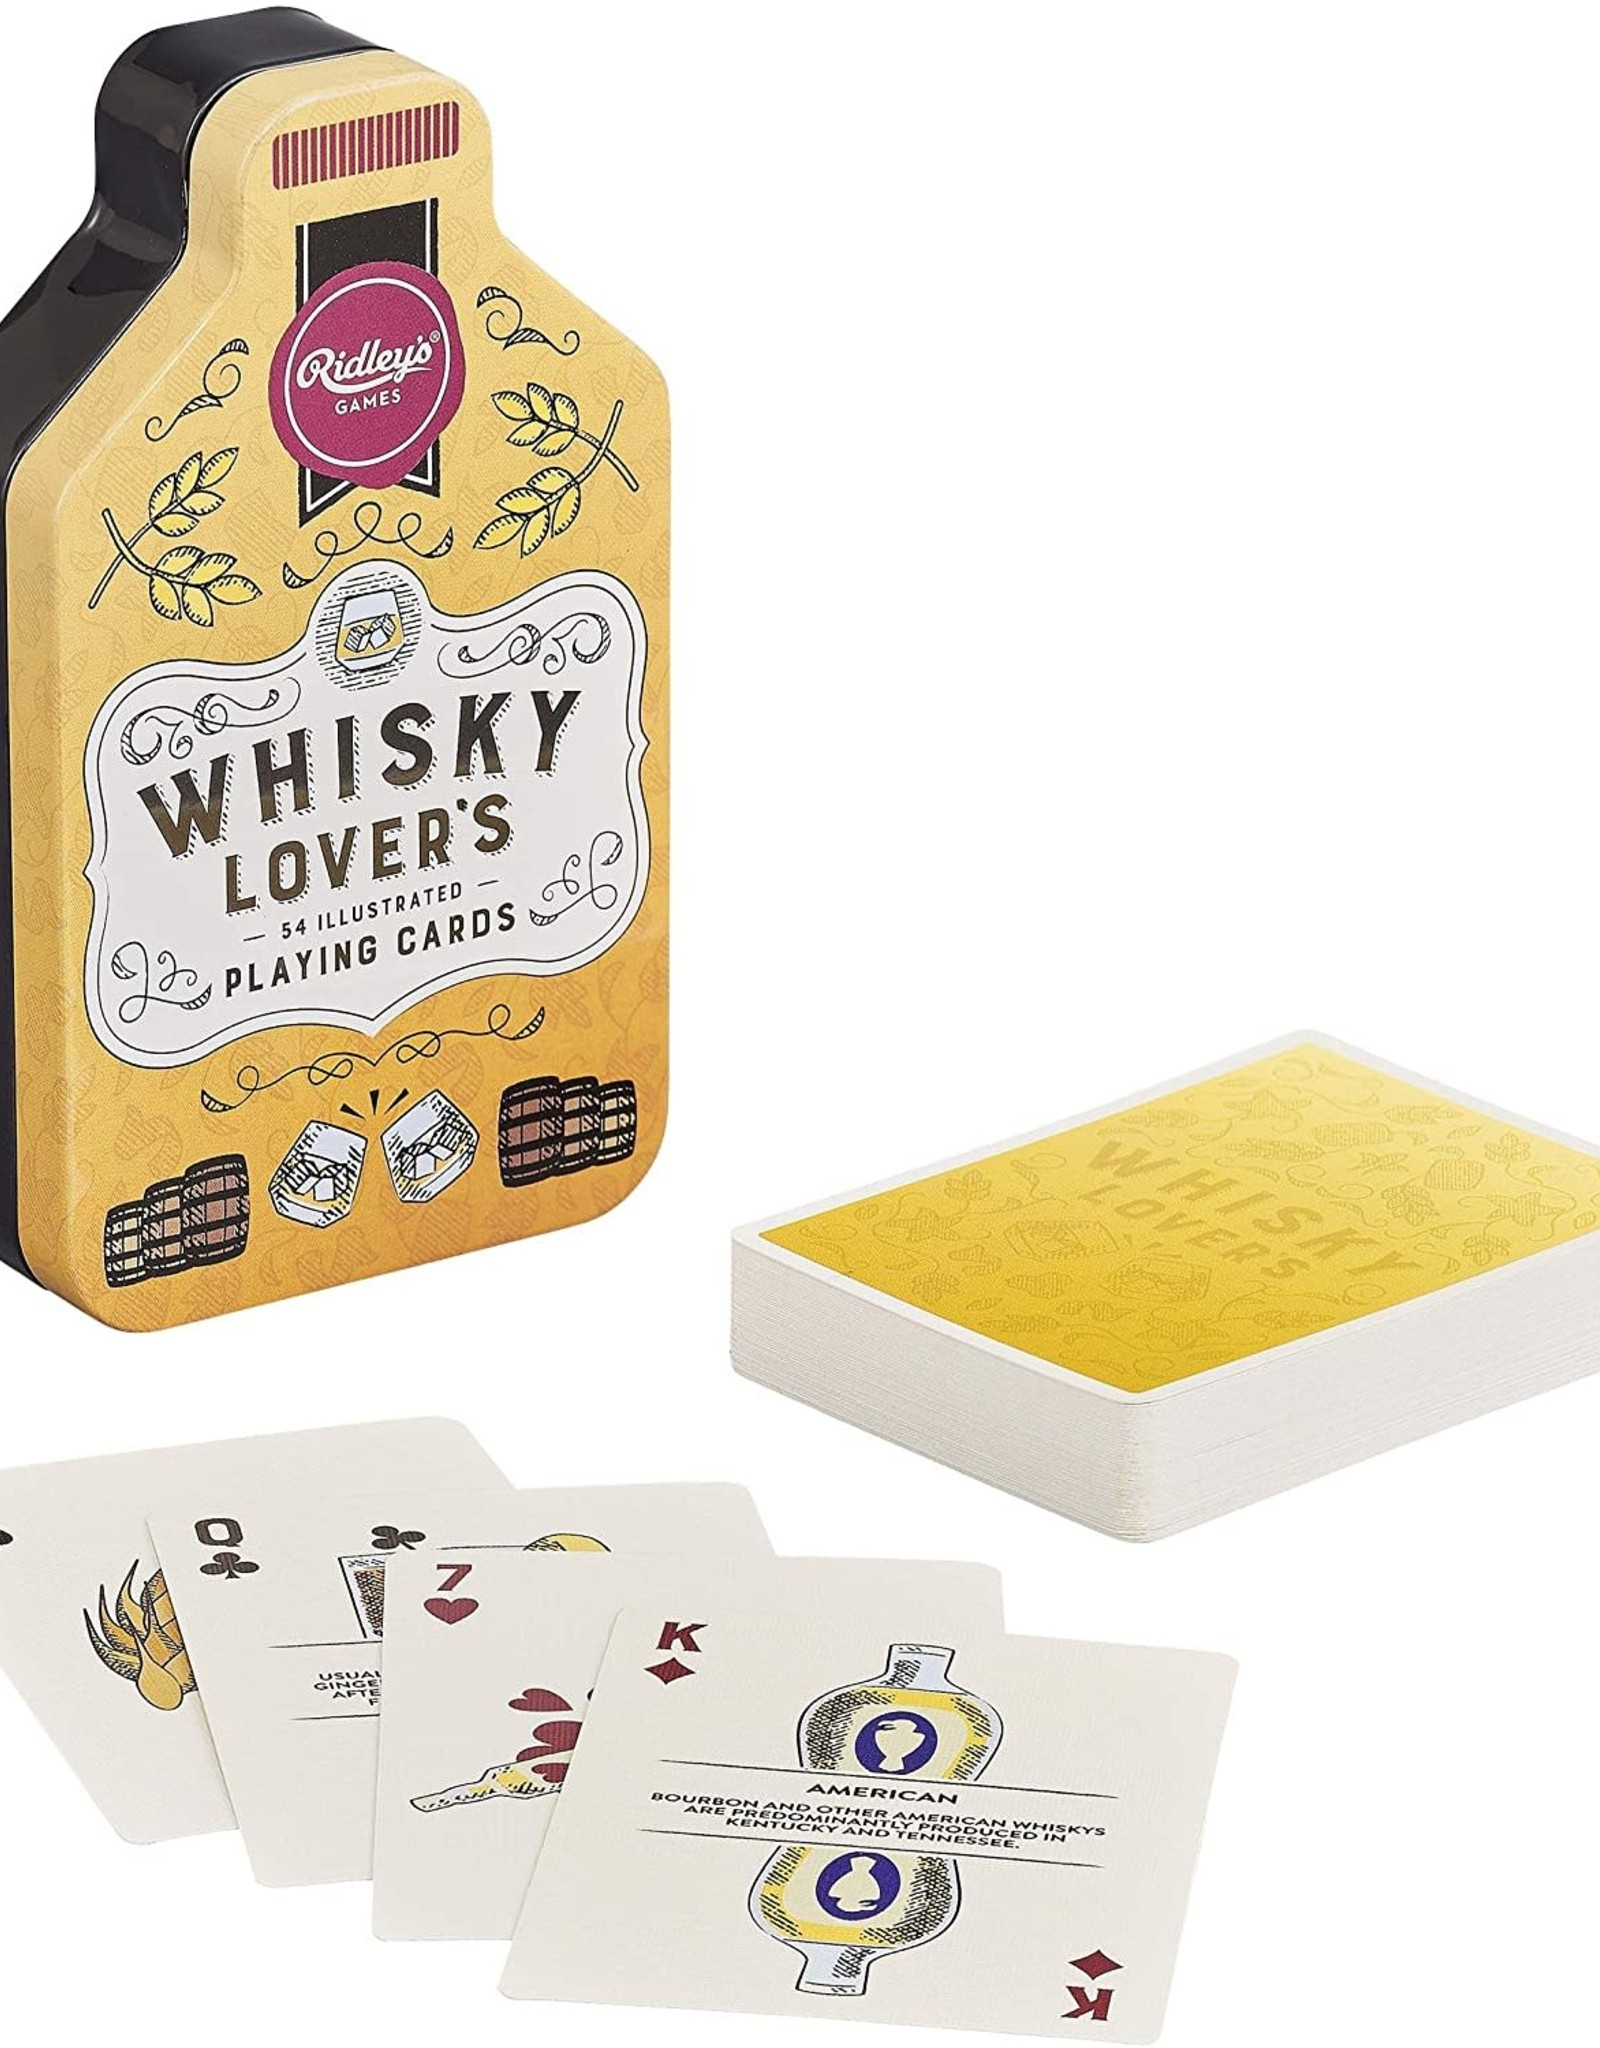 Raincoast Books Whisky Lover's Playing Cards